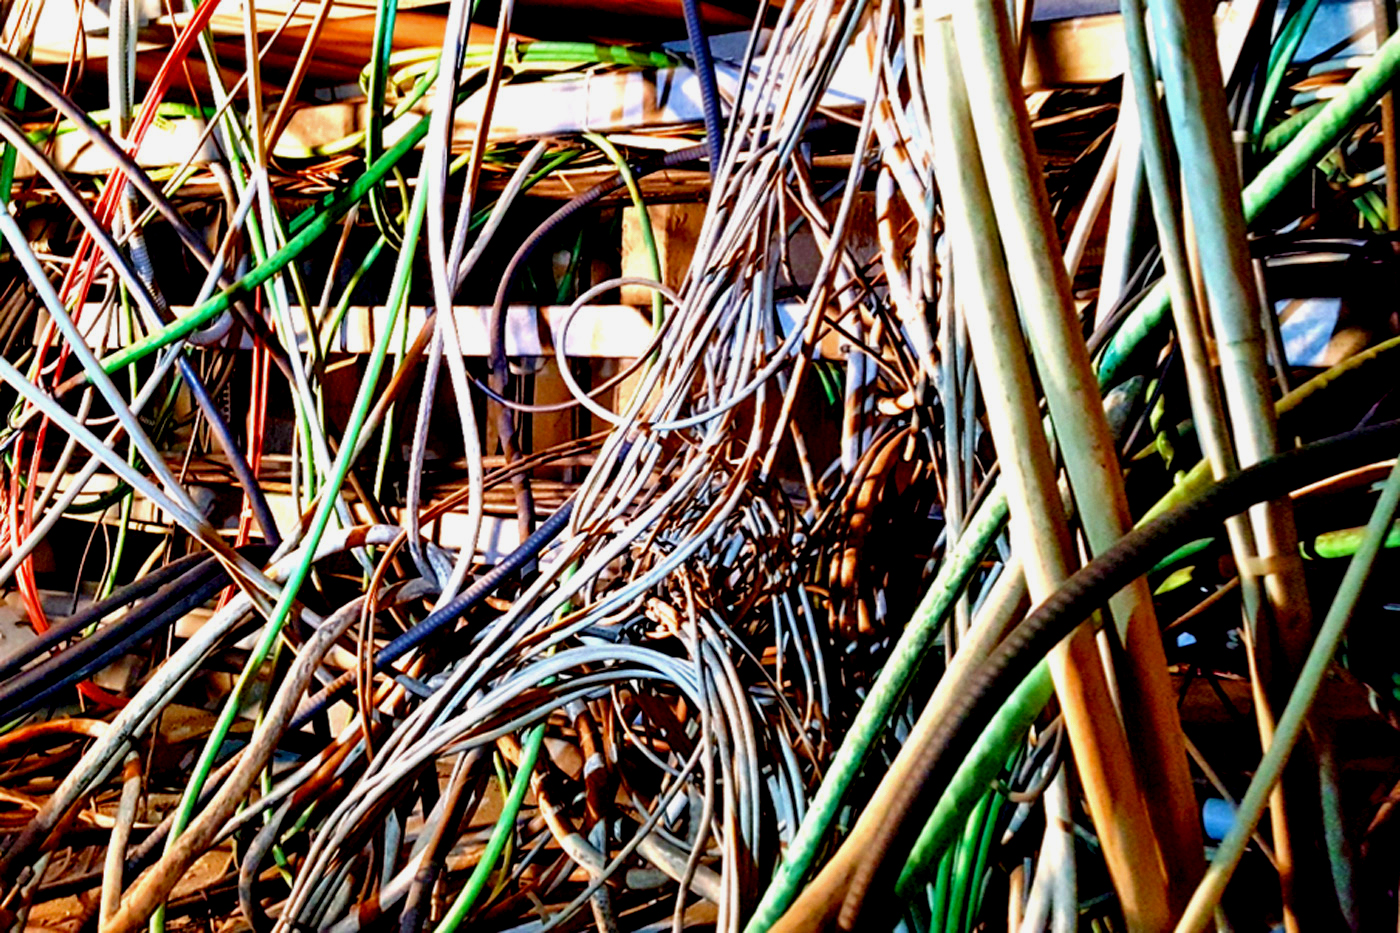 Large Hadron Collider Crew Has To Pull 9000 Old Cables Messy Wiring Pictures